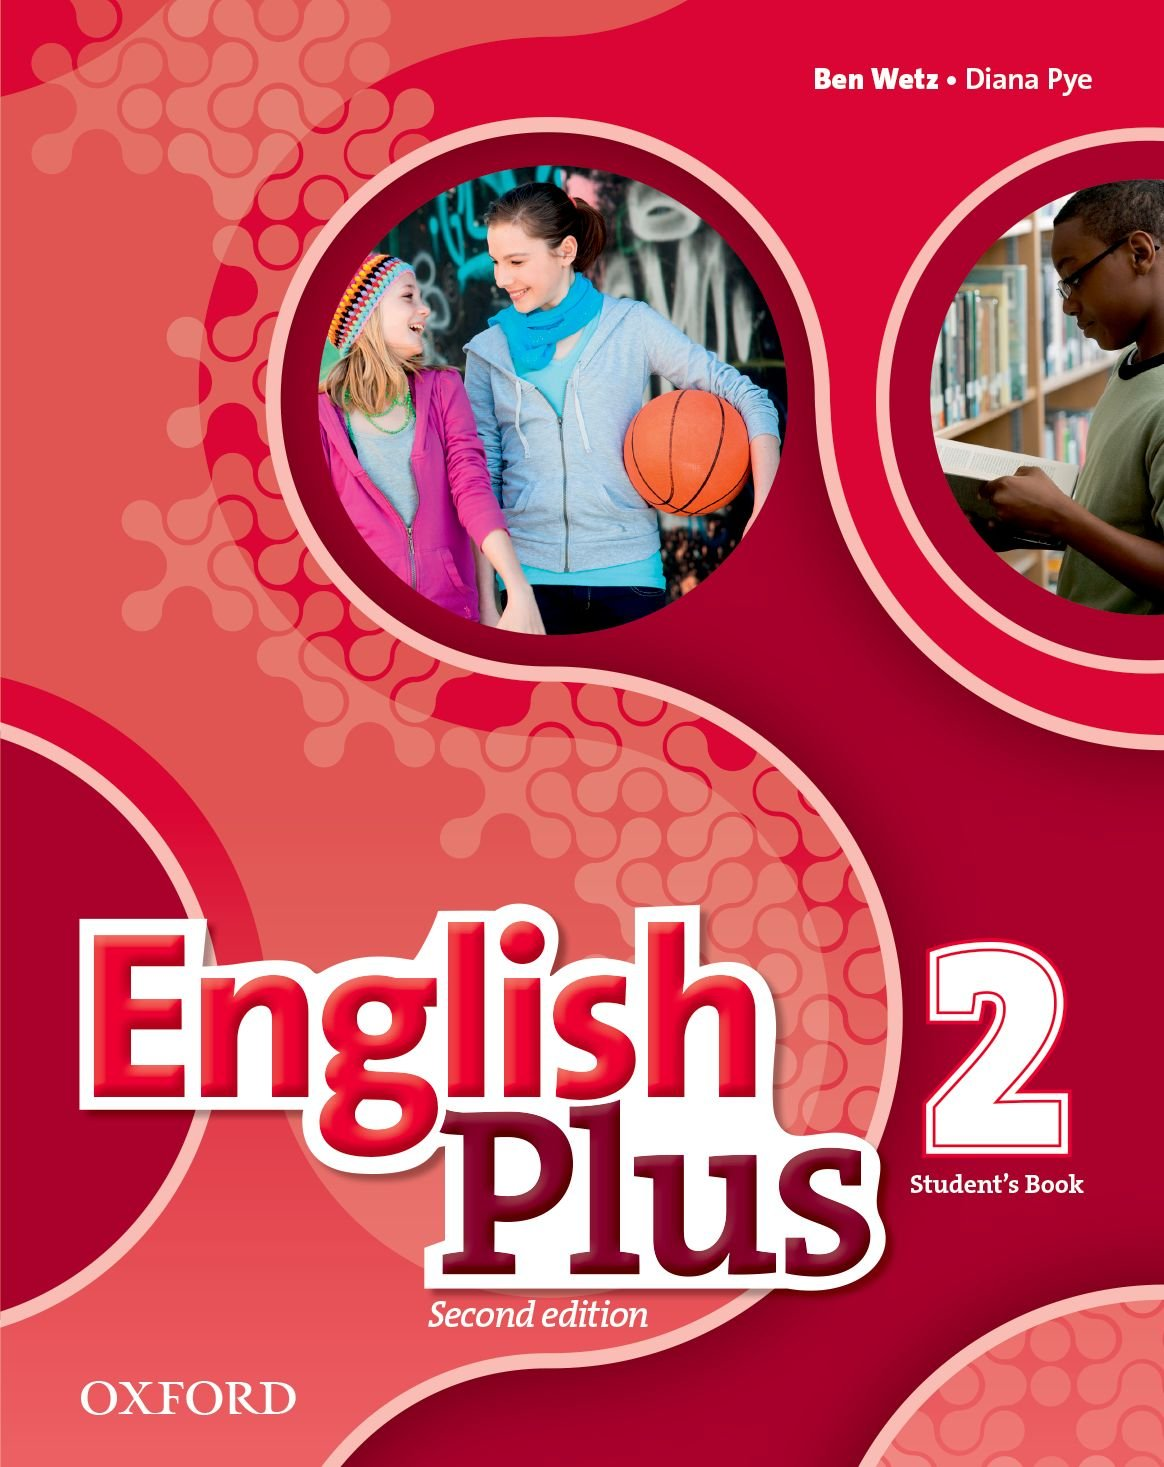 Plus book 2 pdf english students